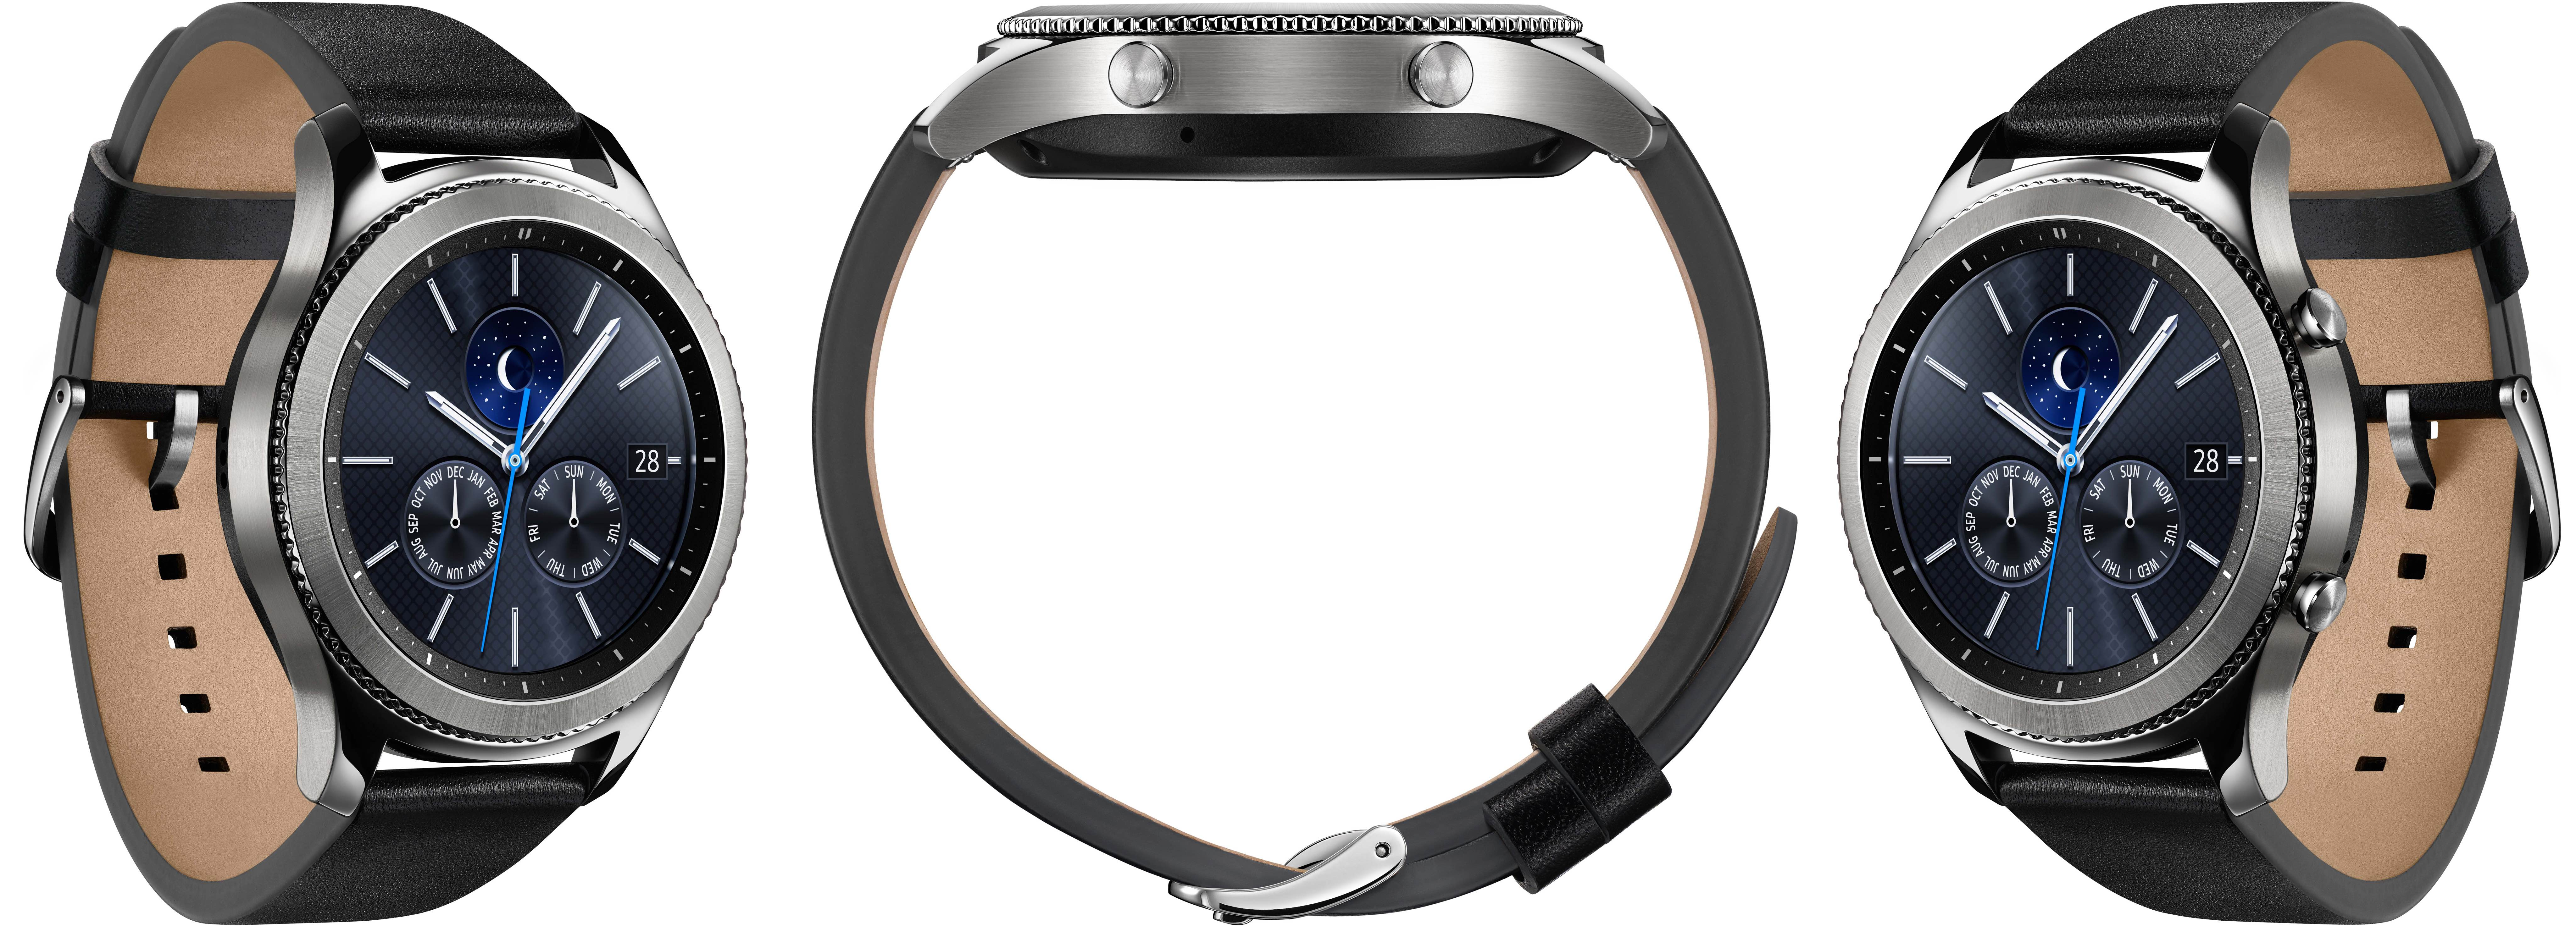 Samsung Gear S3 classic image 003